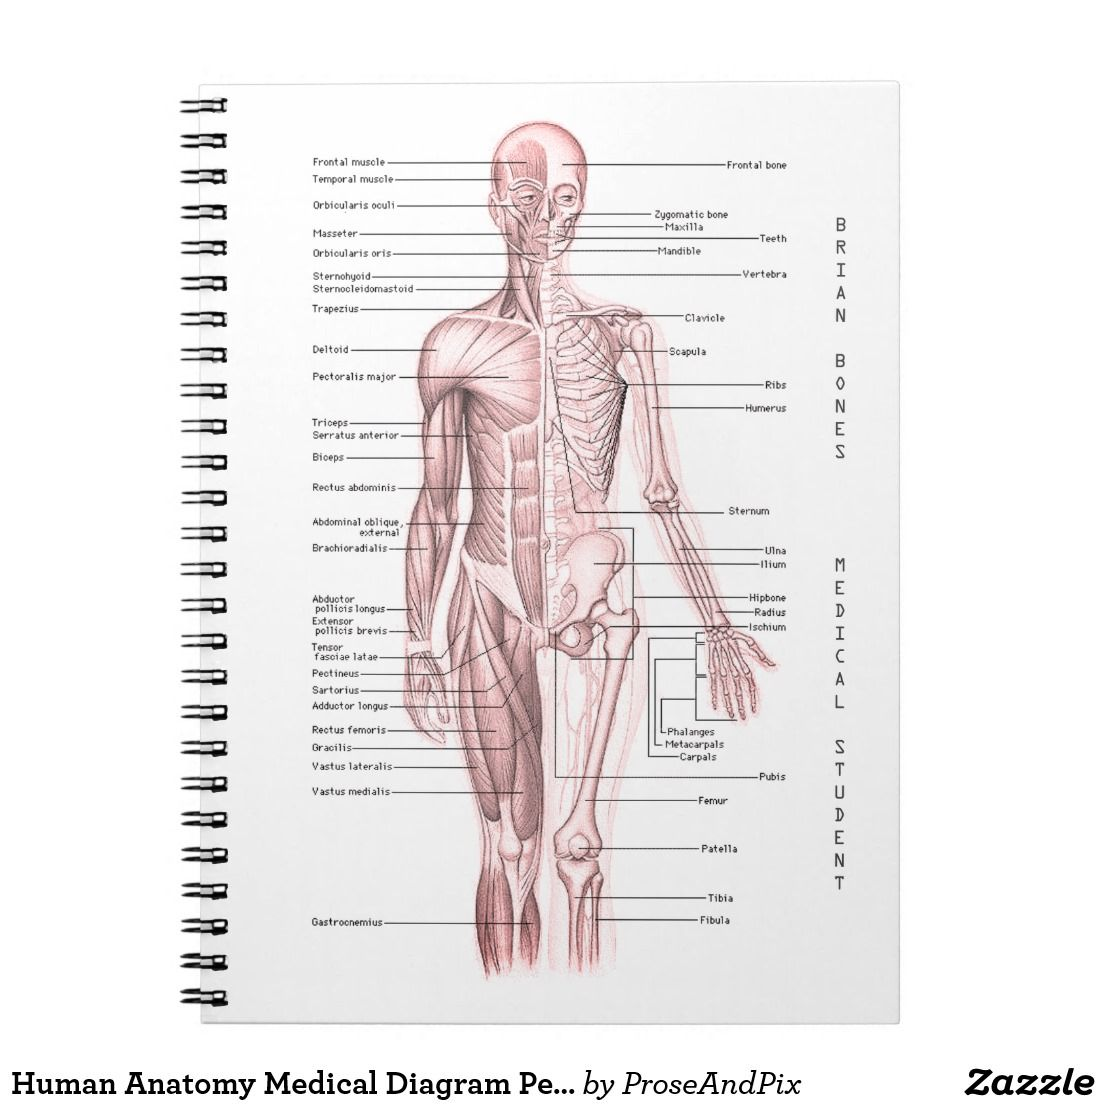 Human Anatomy Medical Diagram Personalized School Notebook